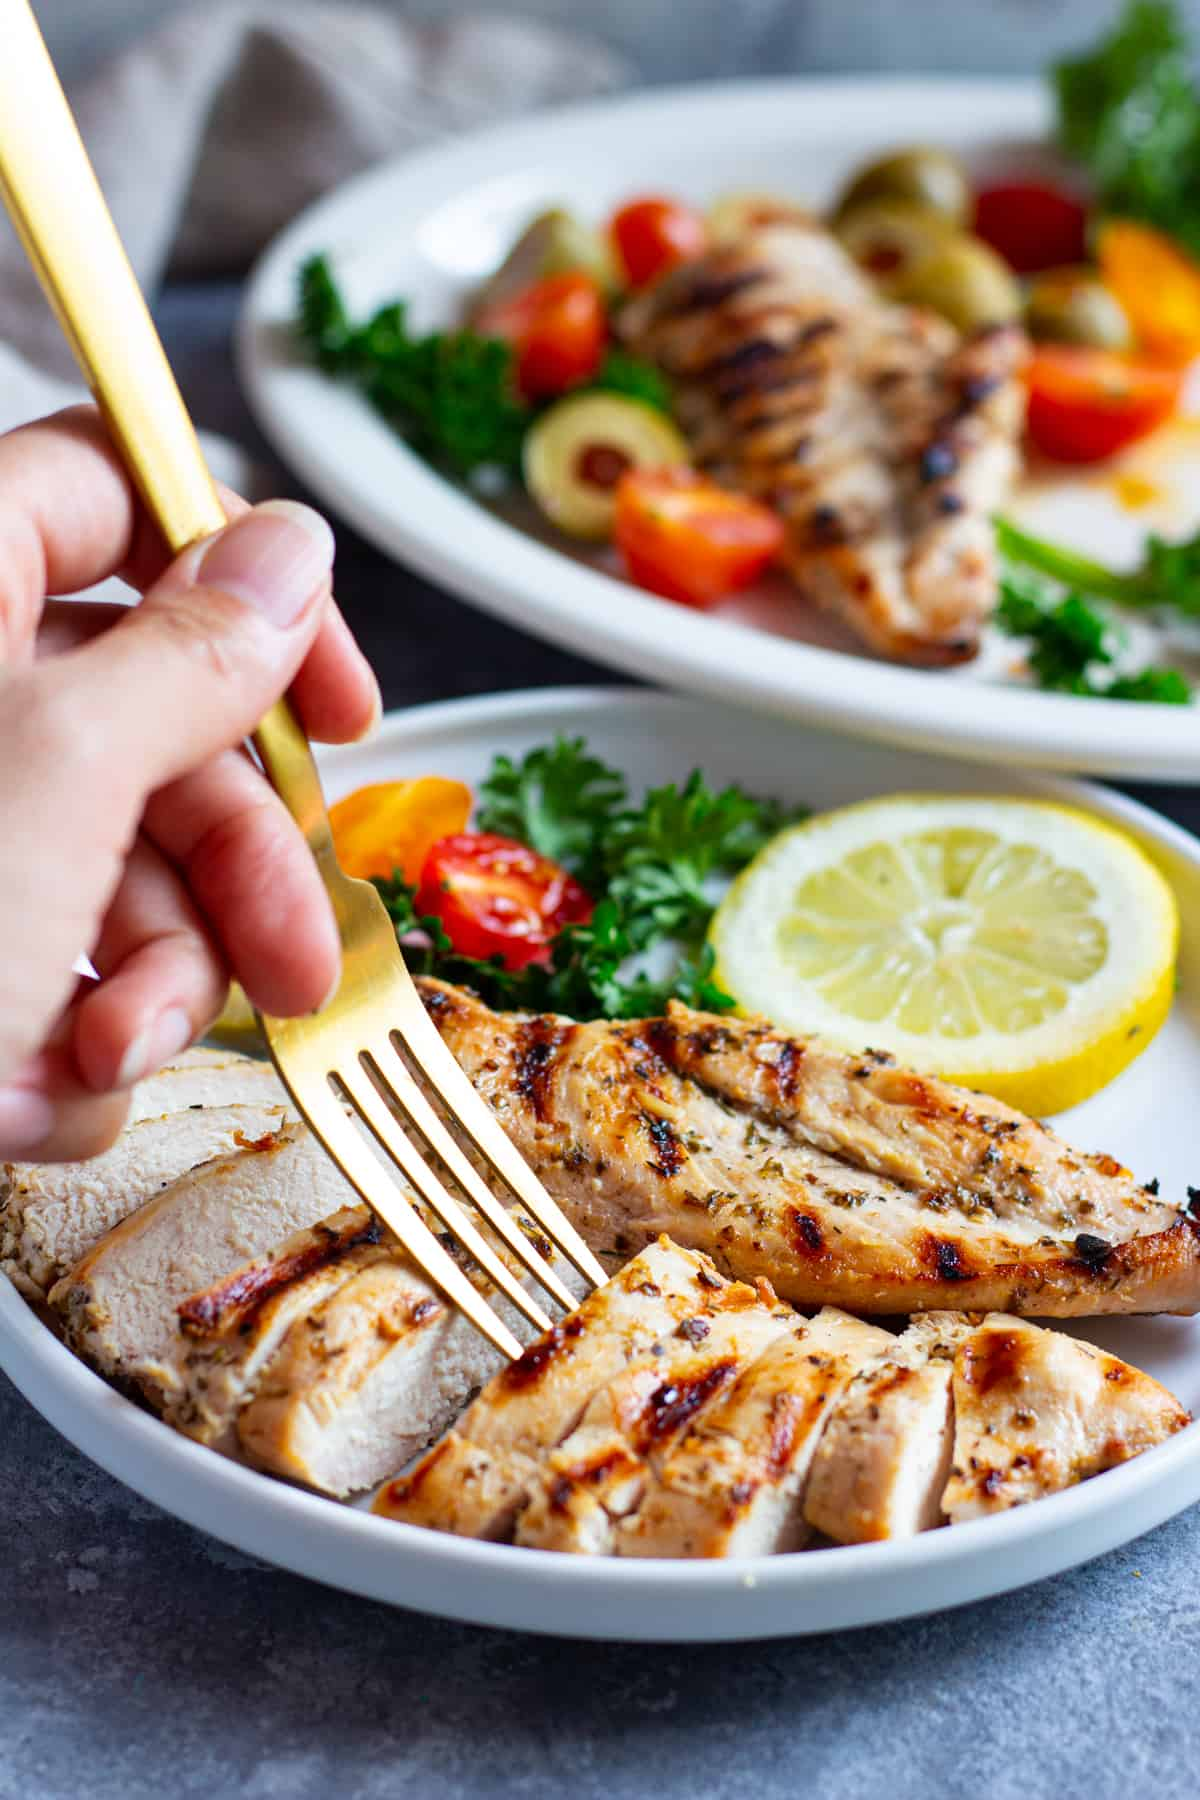 Greek grilled chicken sliced and served on a plate with lemon and herbs.